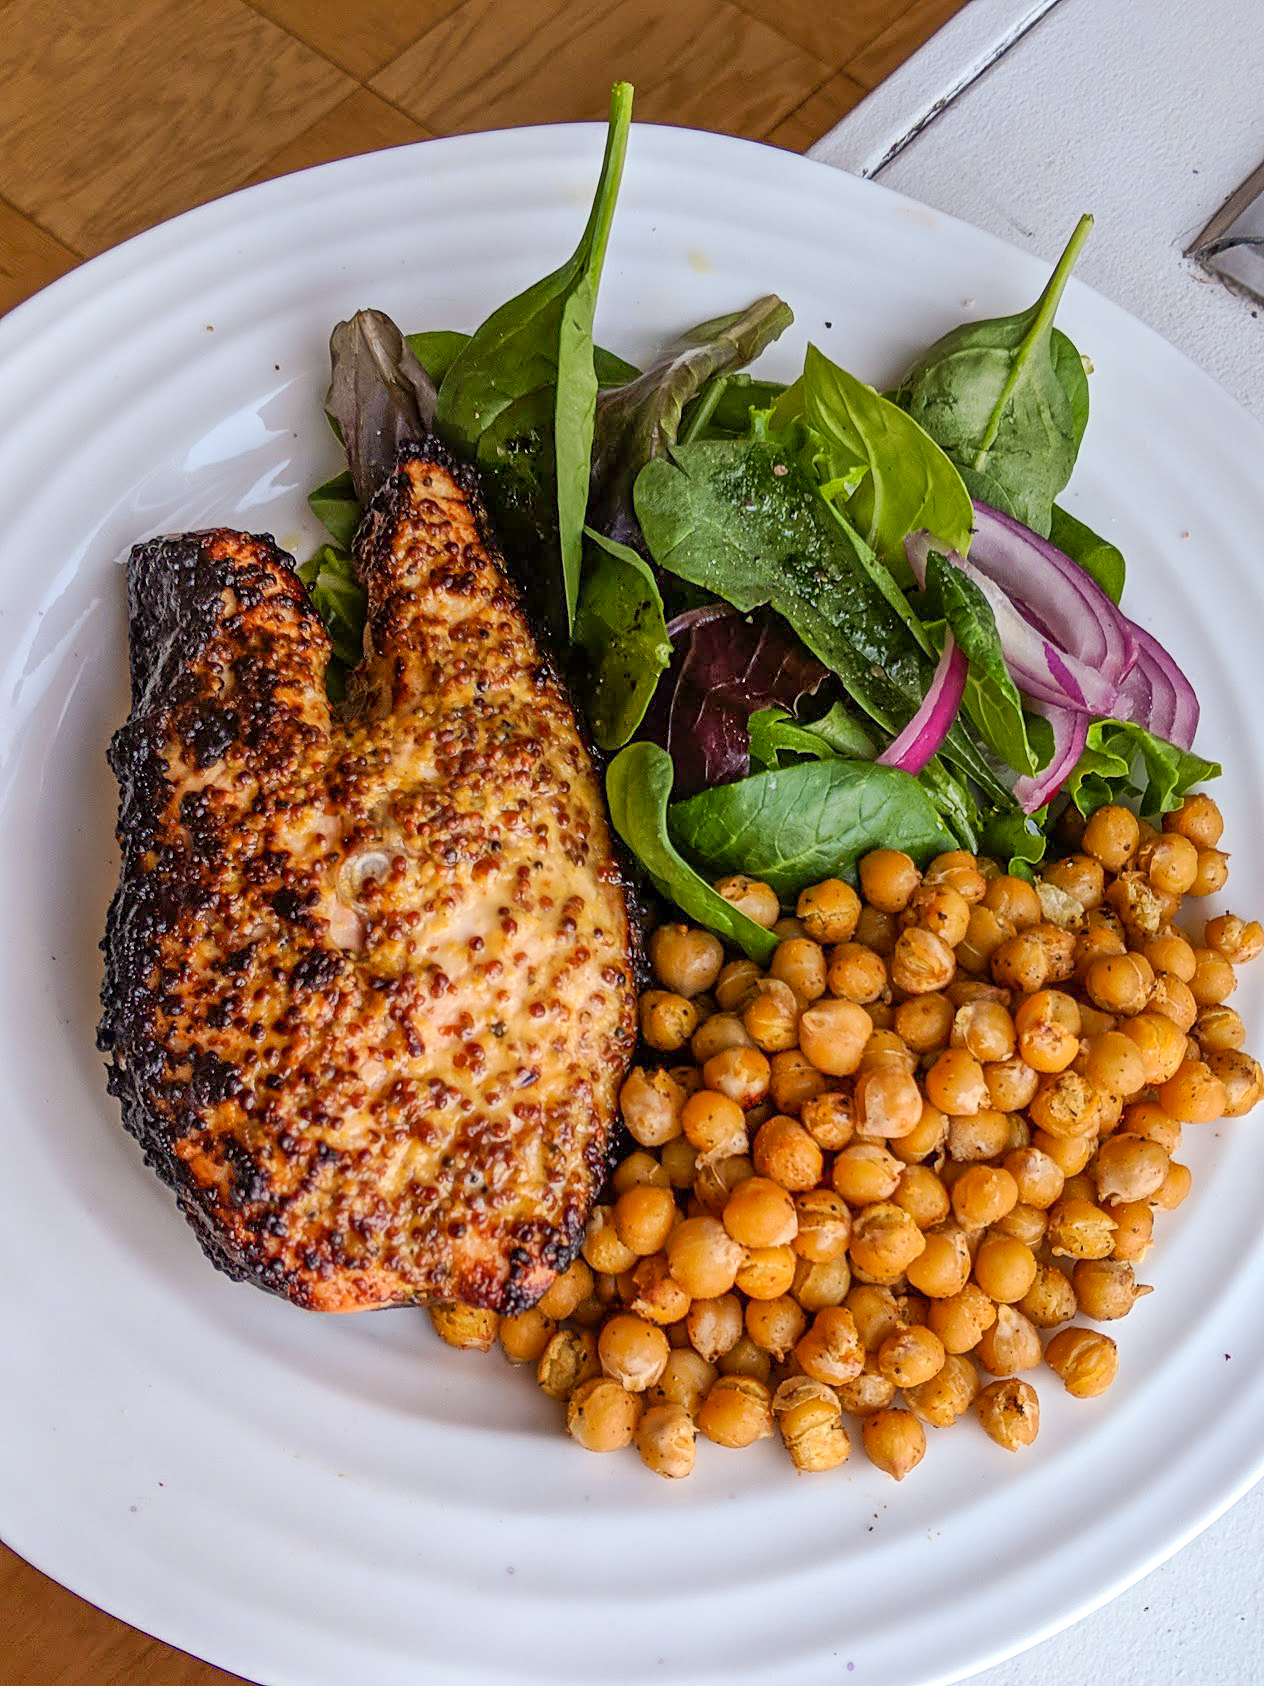 A full plate featuring a savory dijon-mustard salmon steak with a side of roasted chickpeas and a spinach salad.